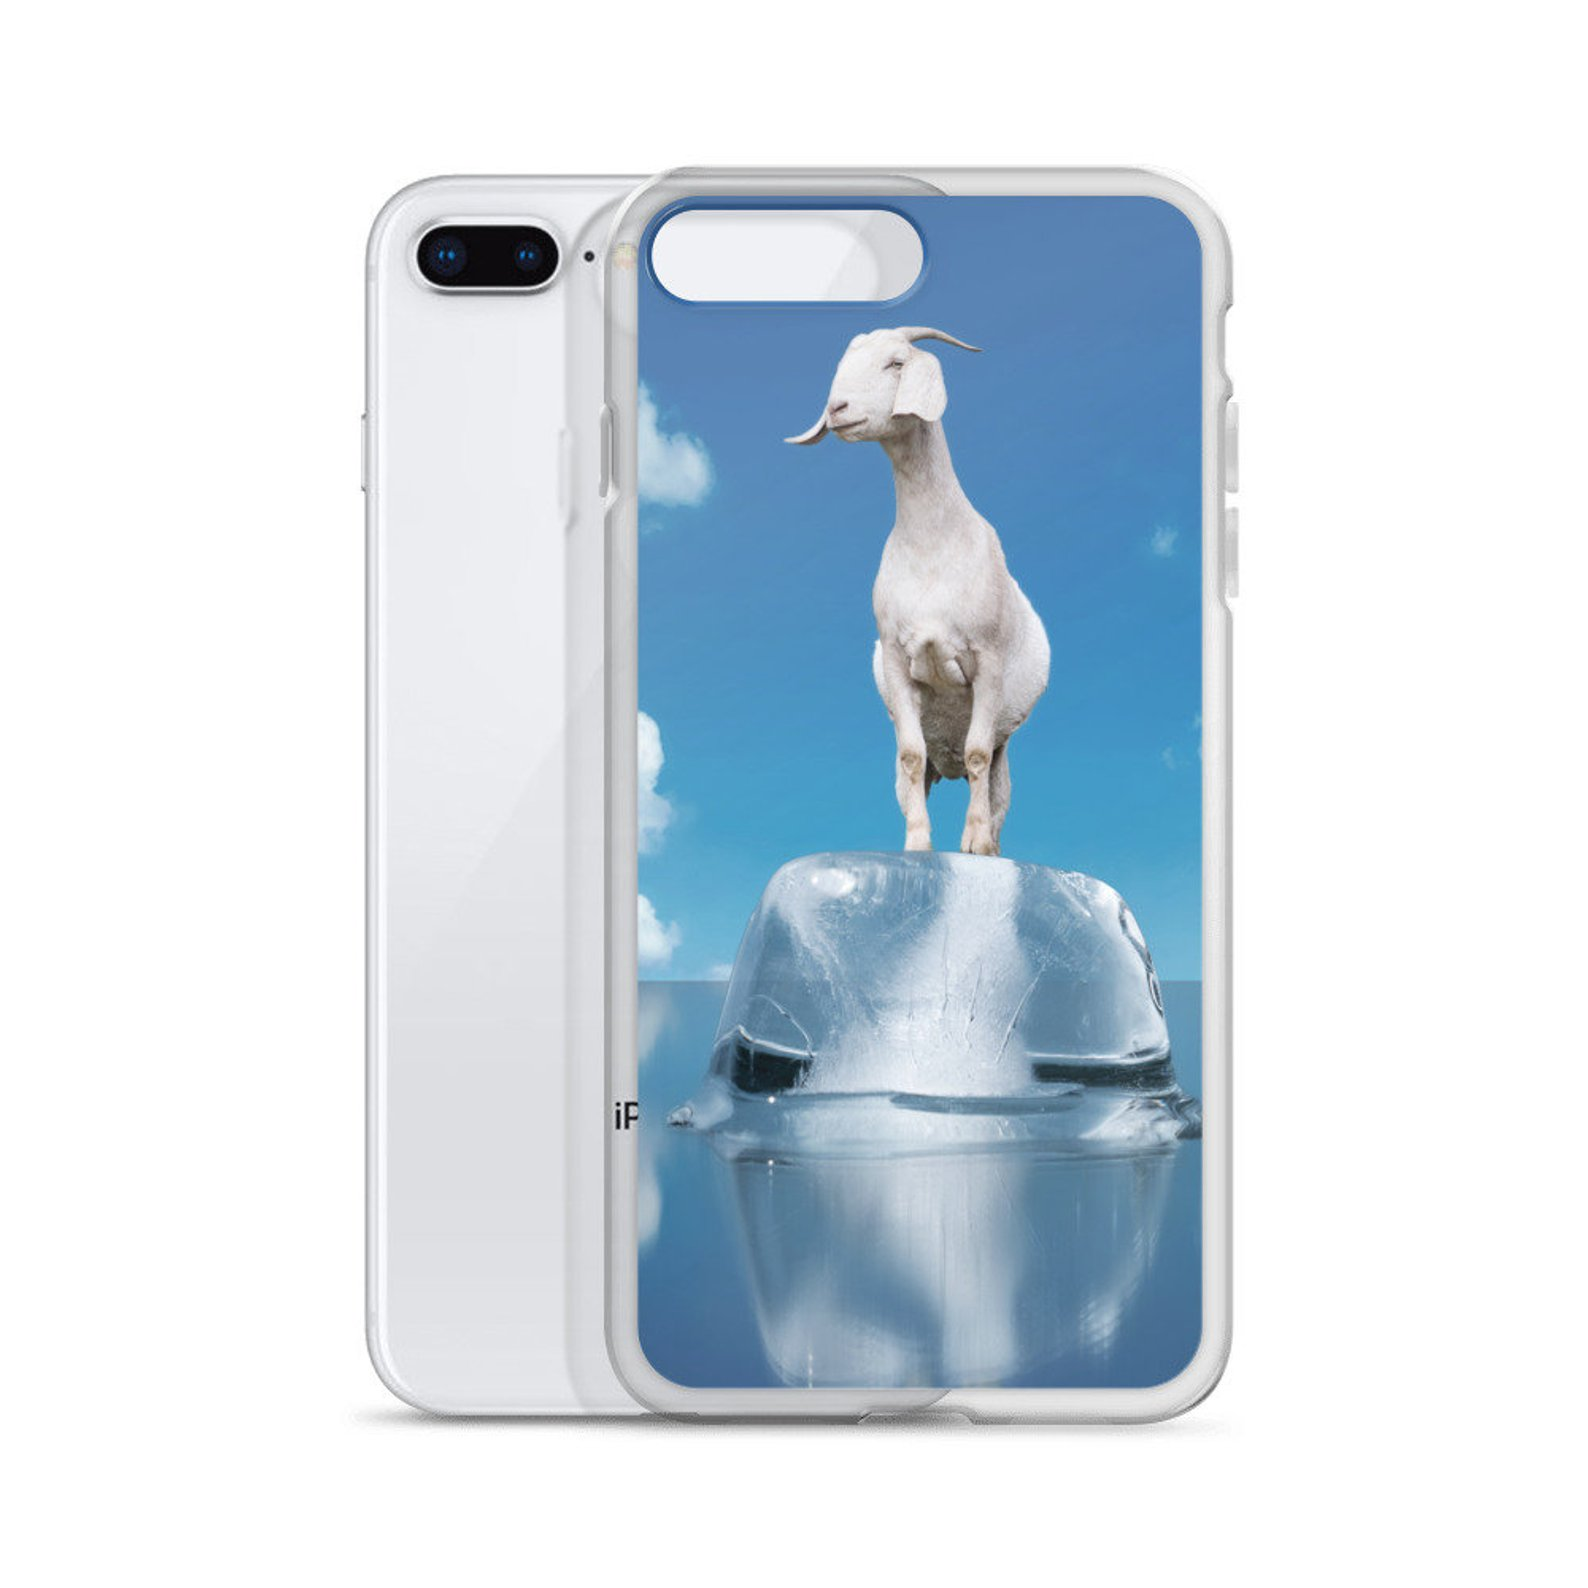 Goat iPhone Case Perpetual Groove